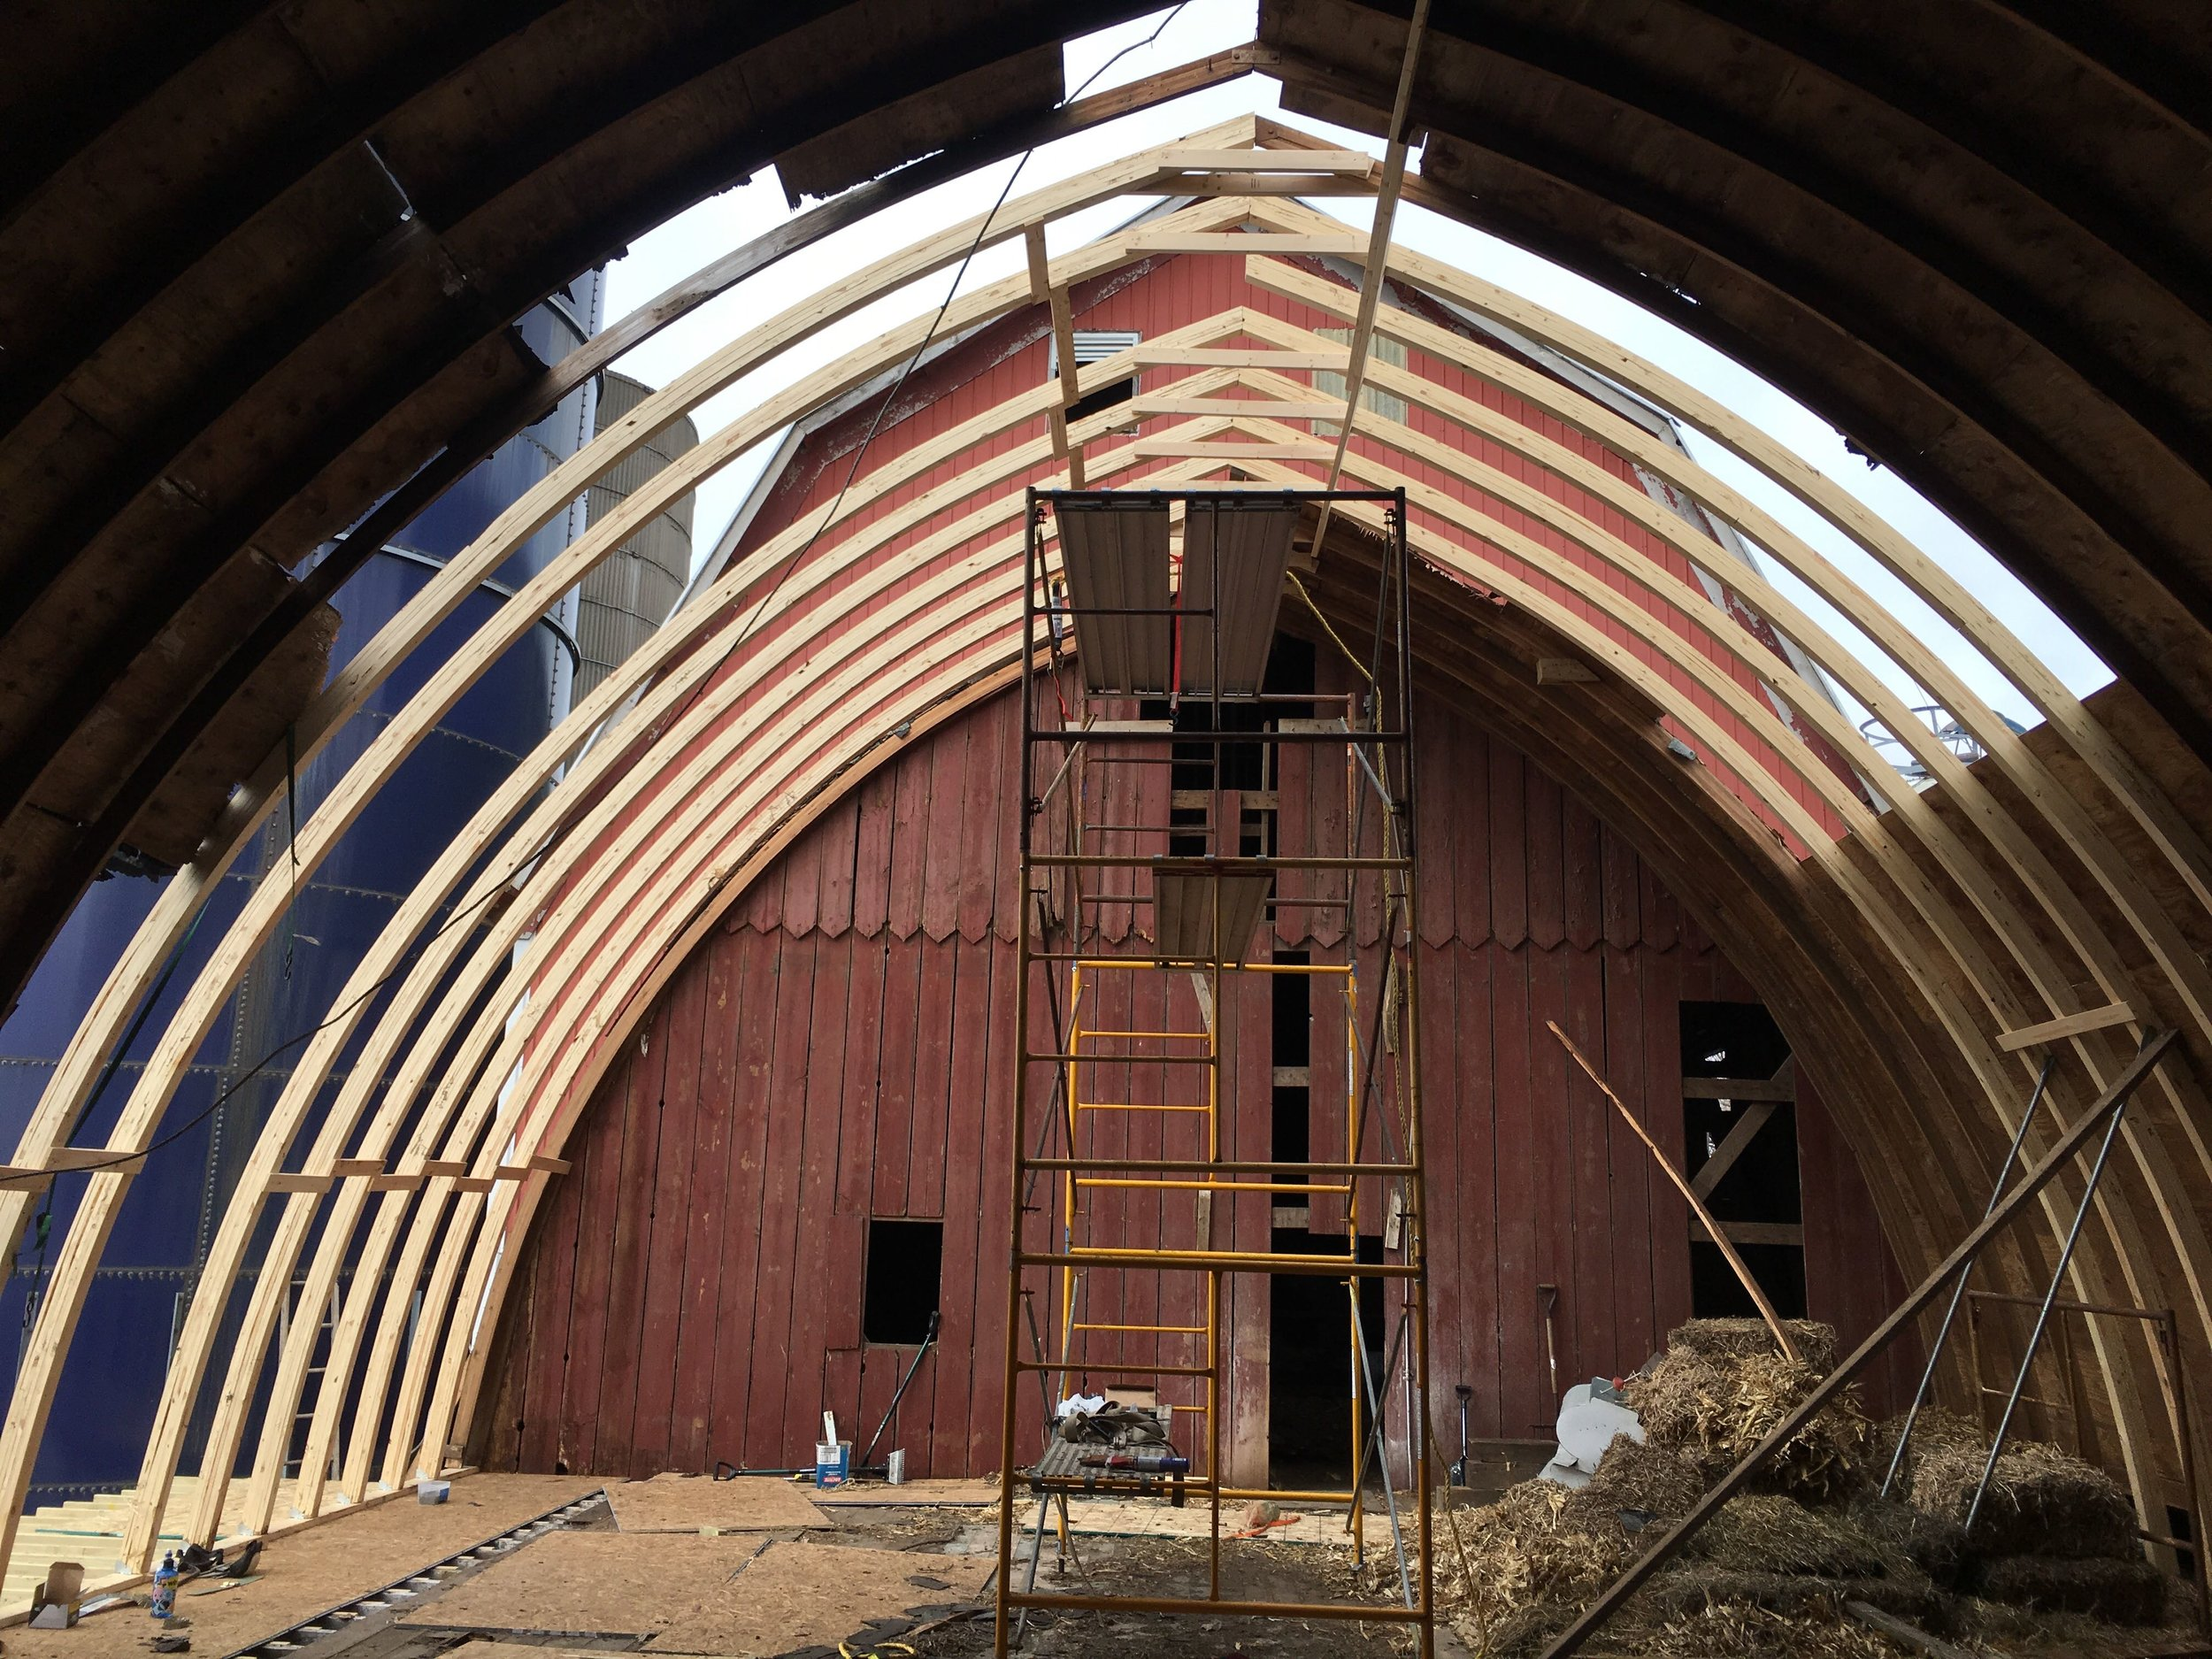 Our first phase required us to clean out the debris from this past Minnesota winter. Second phase was to add new rafters and sheeting. We will soon be adding solar shingles to this positive impact barn restoration.